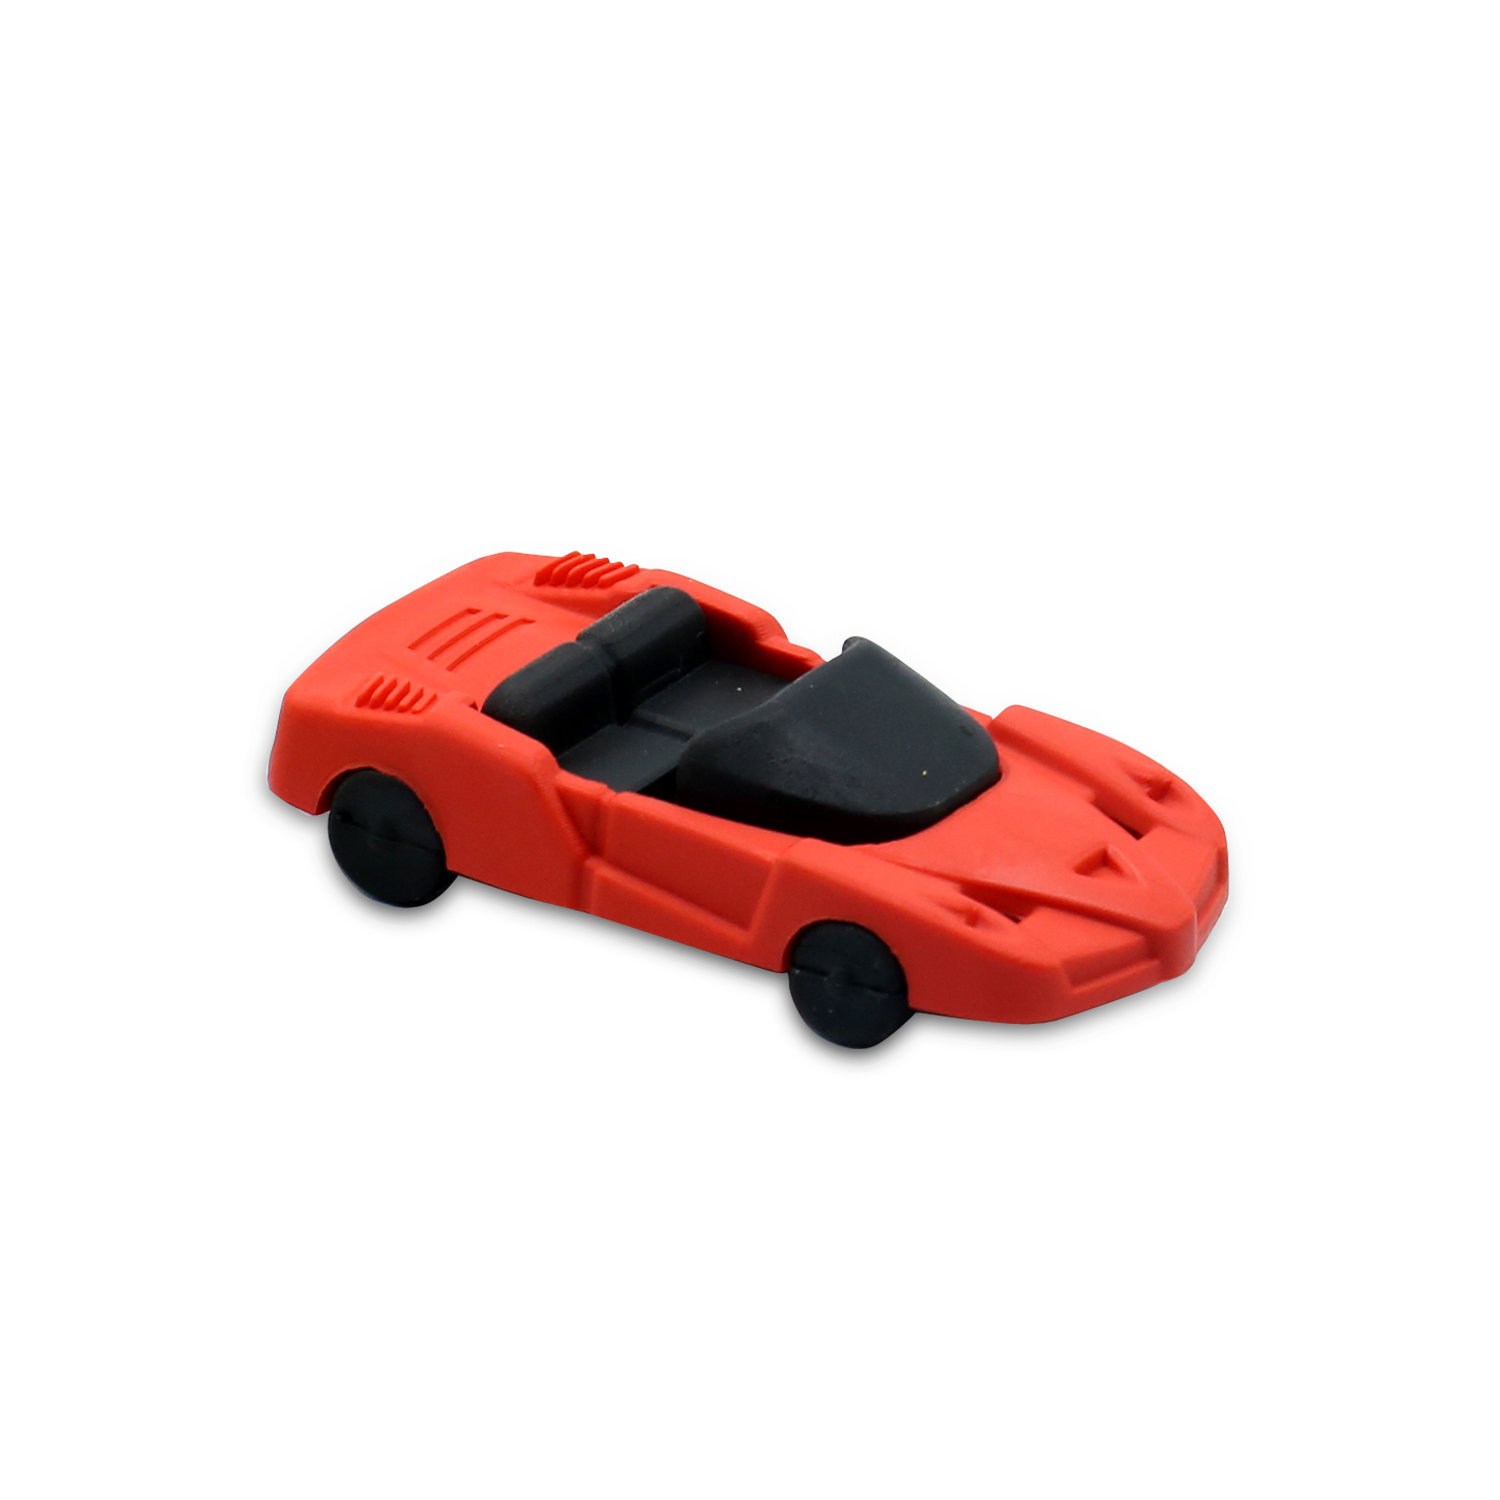 Loufor Car Eraser 5262 Red